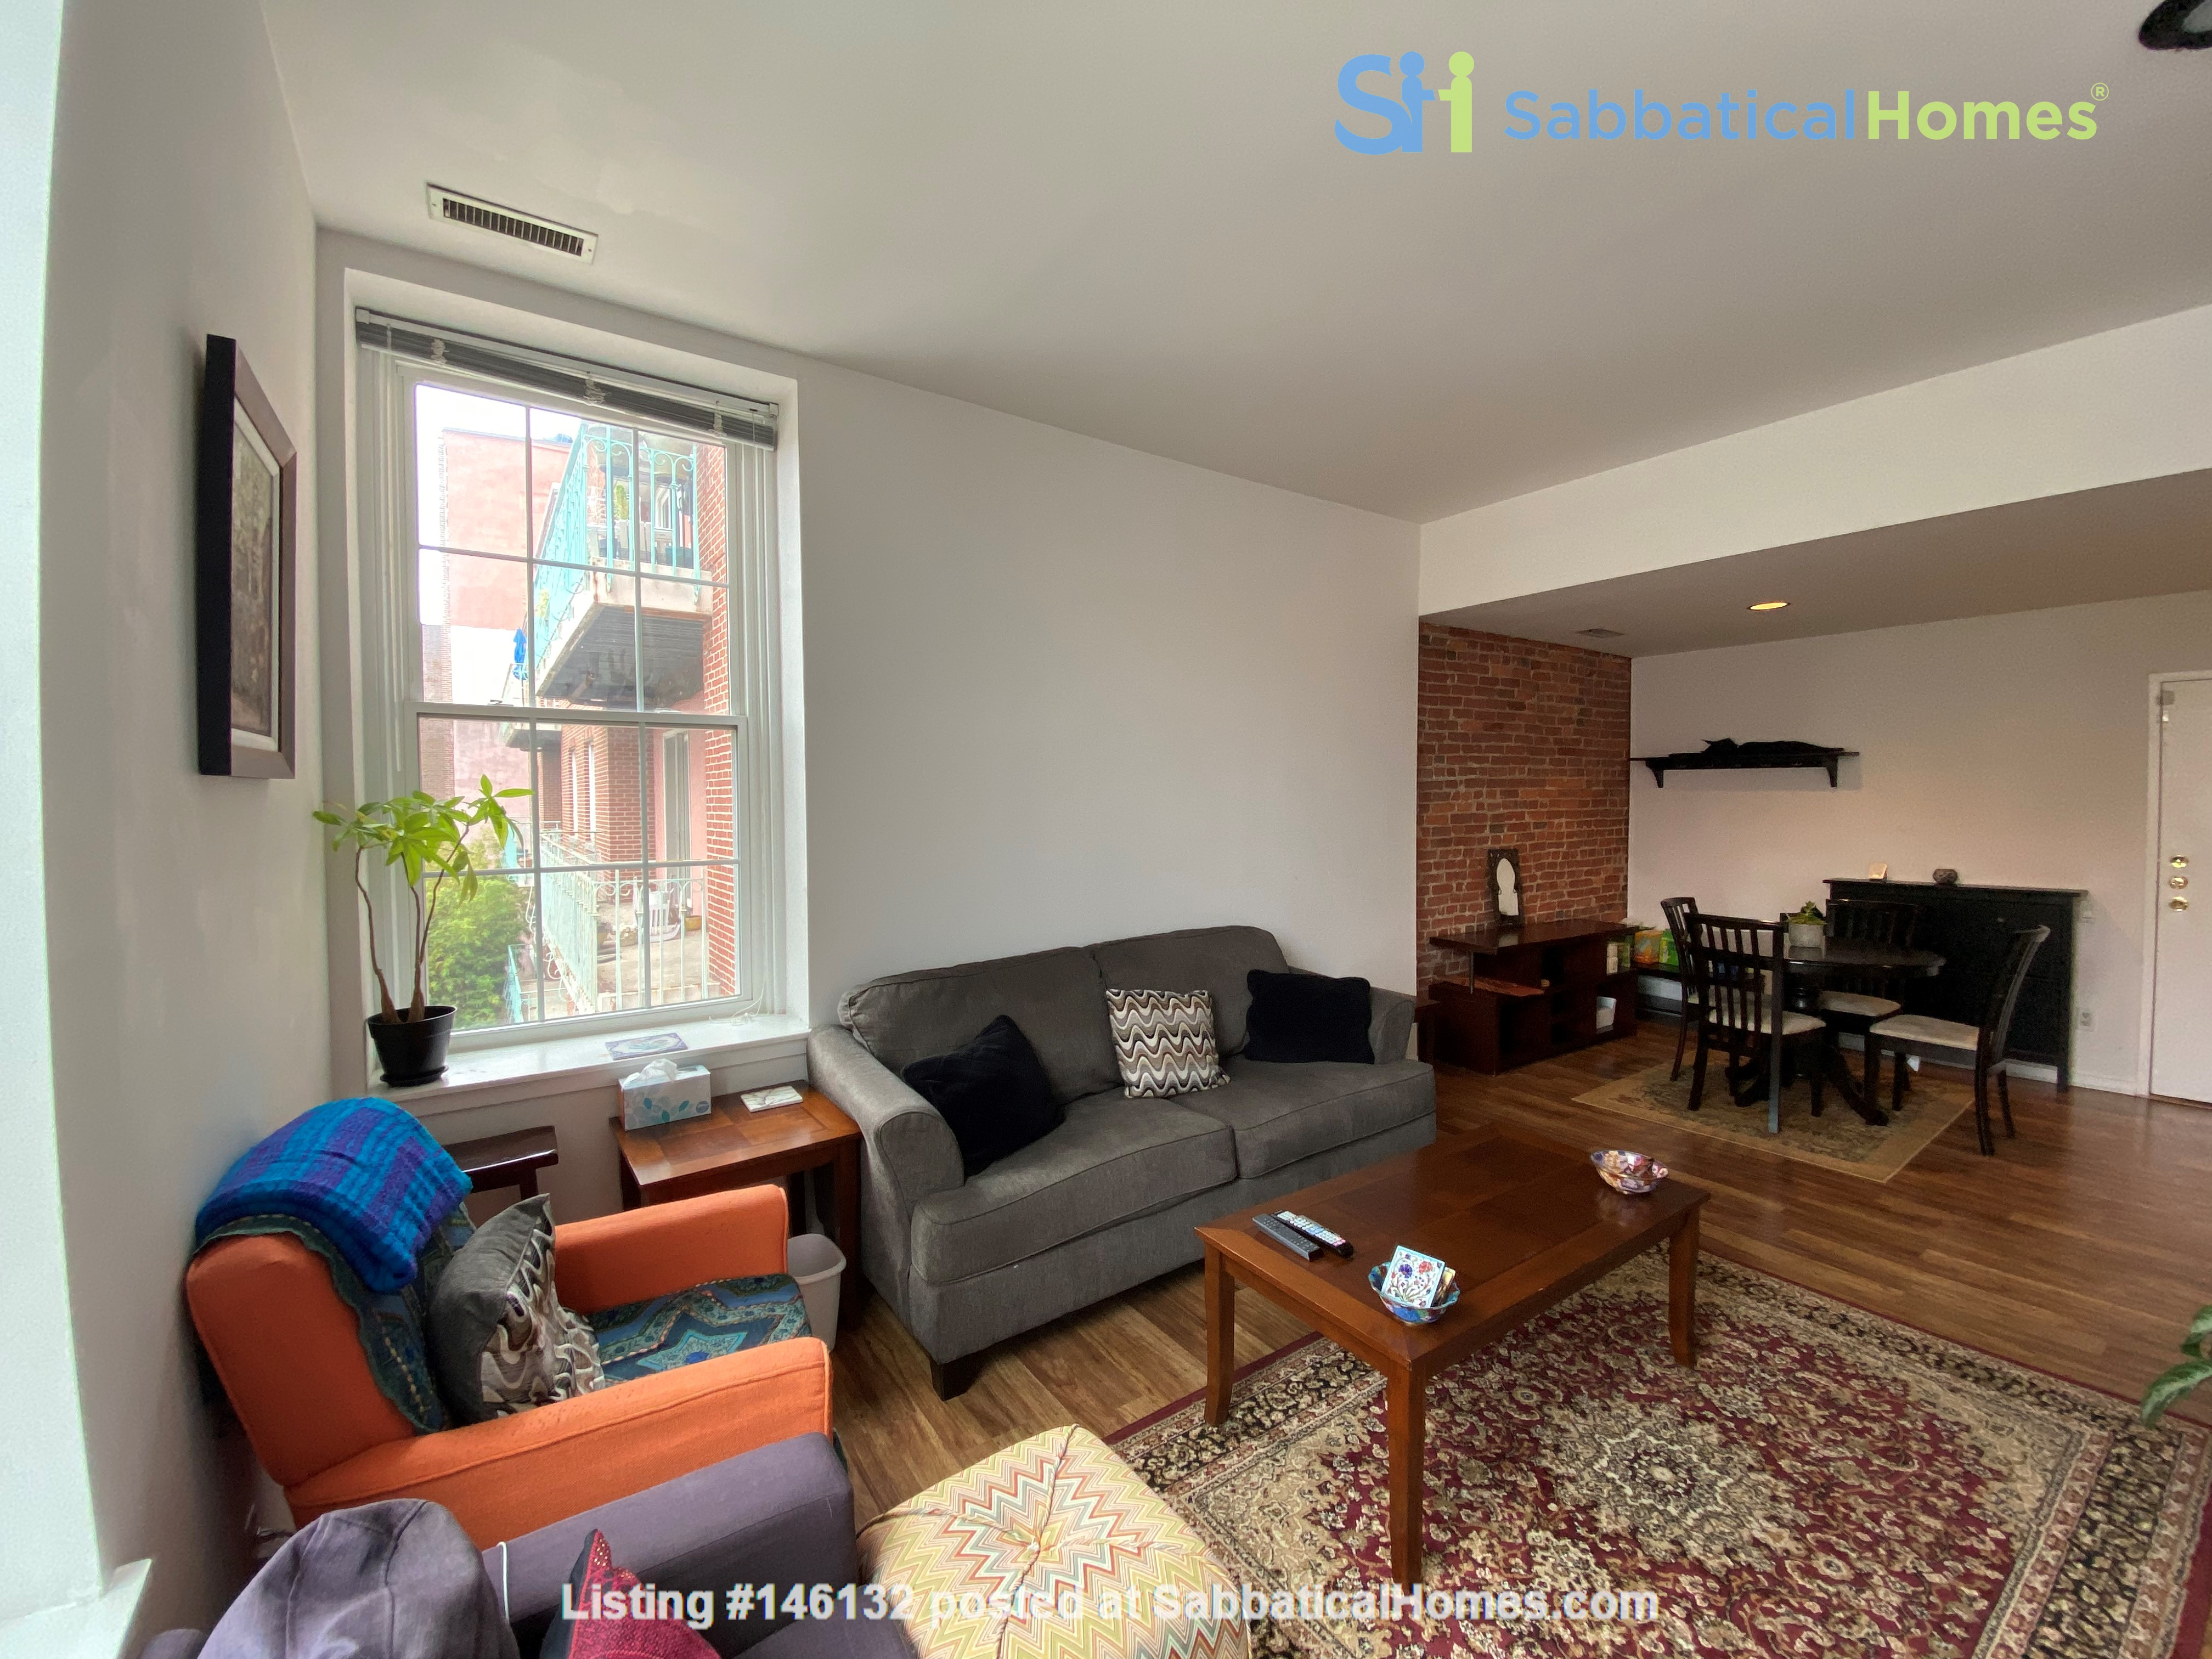 Sunny and bright old city 2 bedroom - near everything! Home Rental in Philadelphia 0